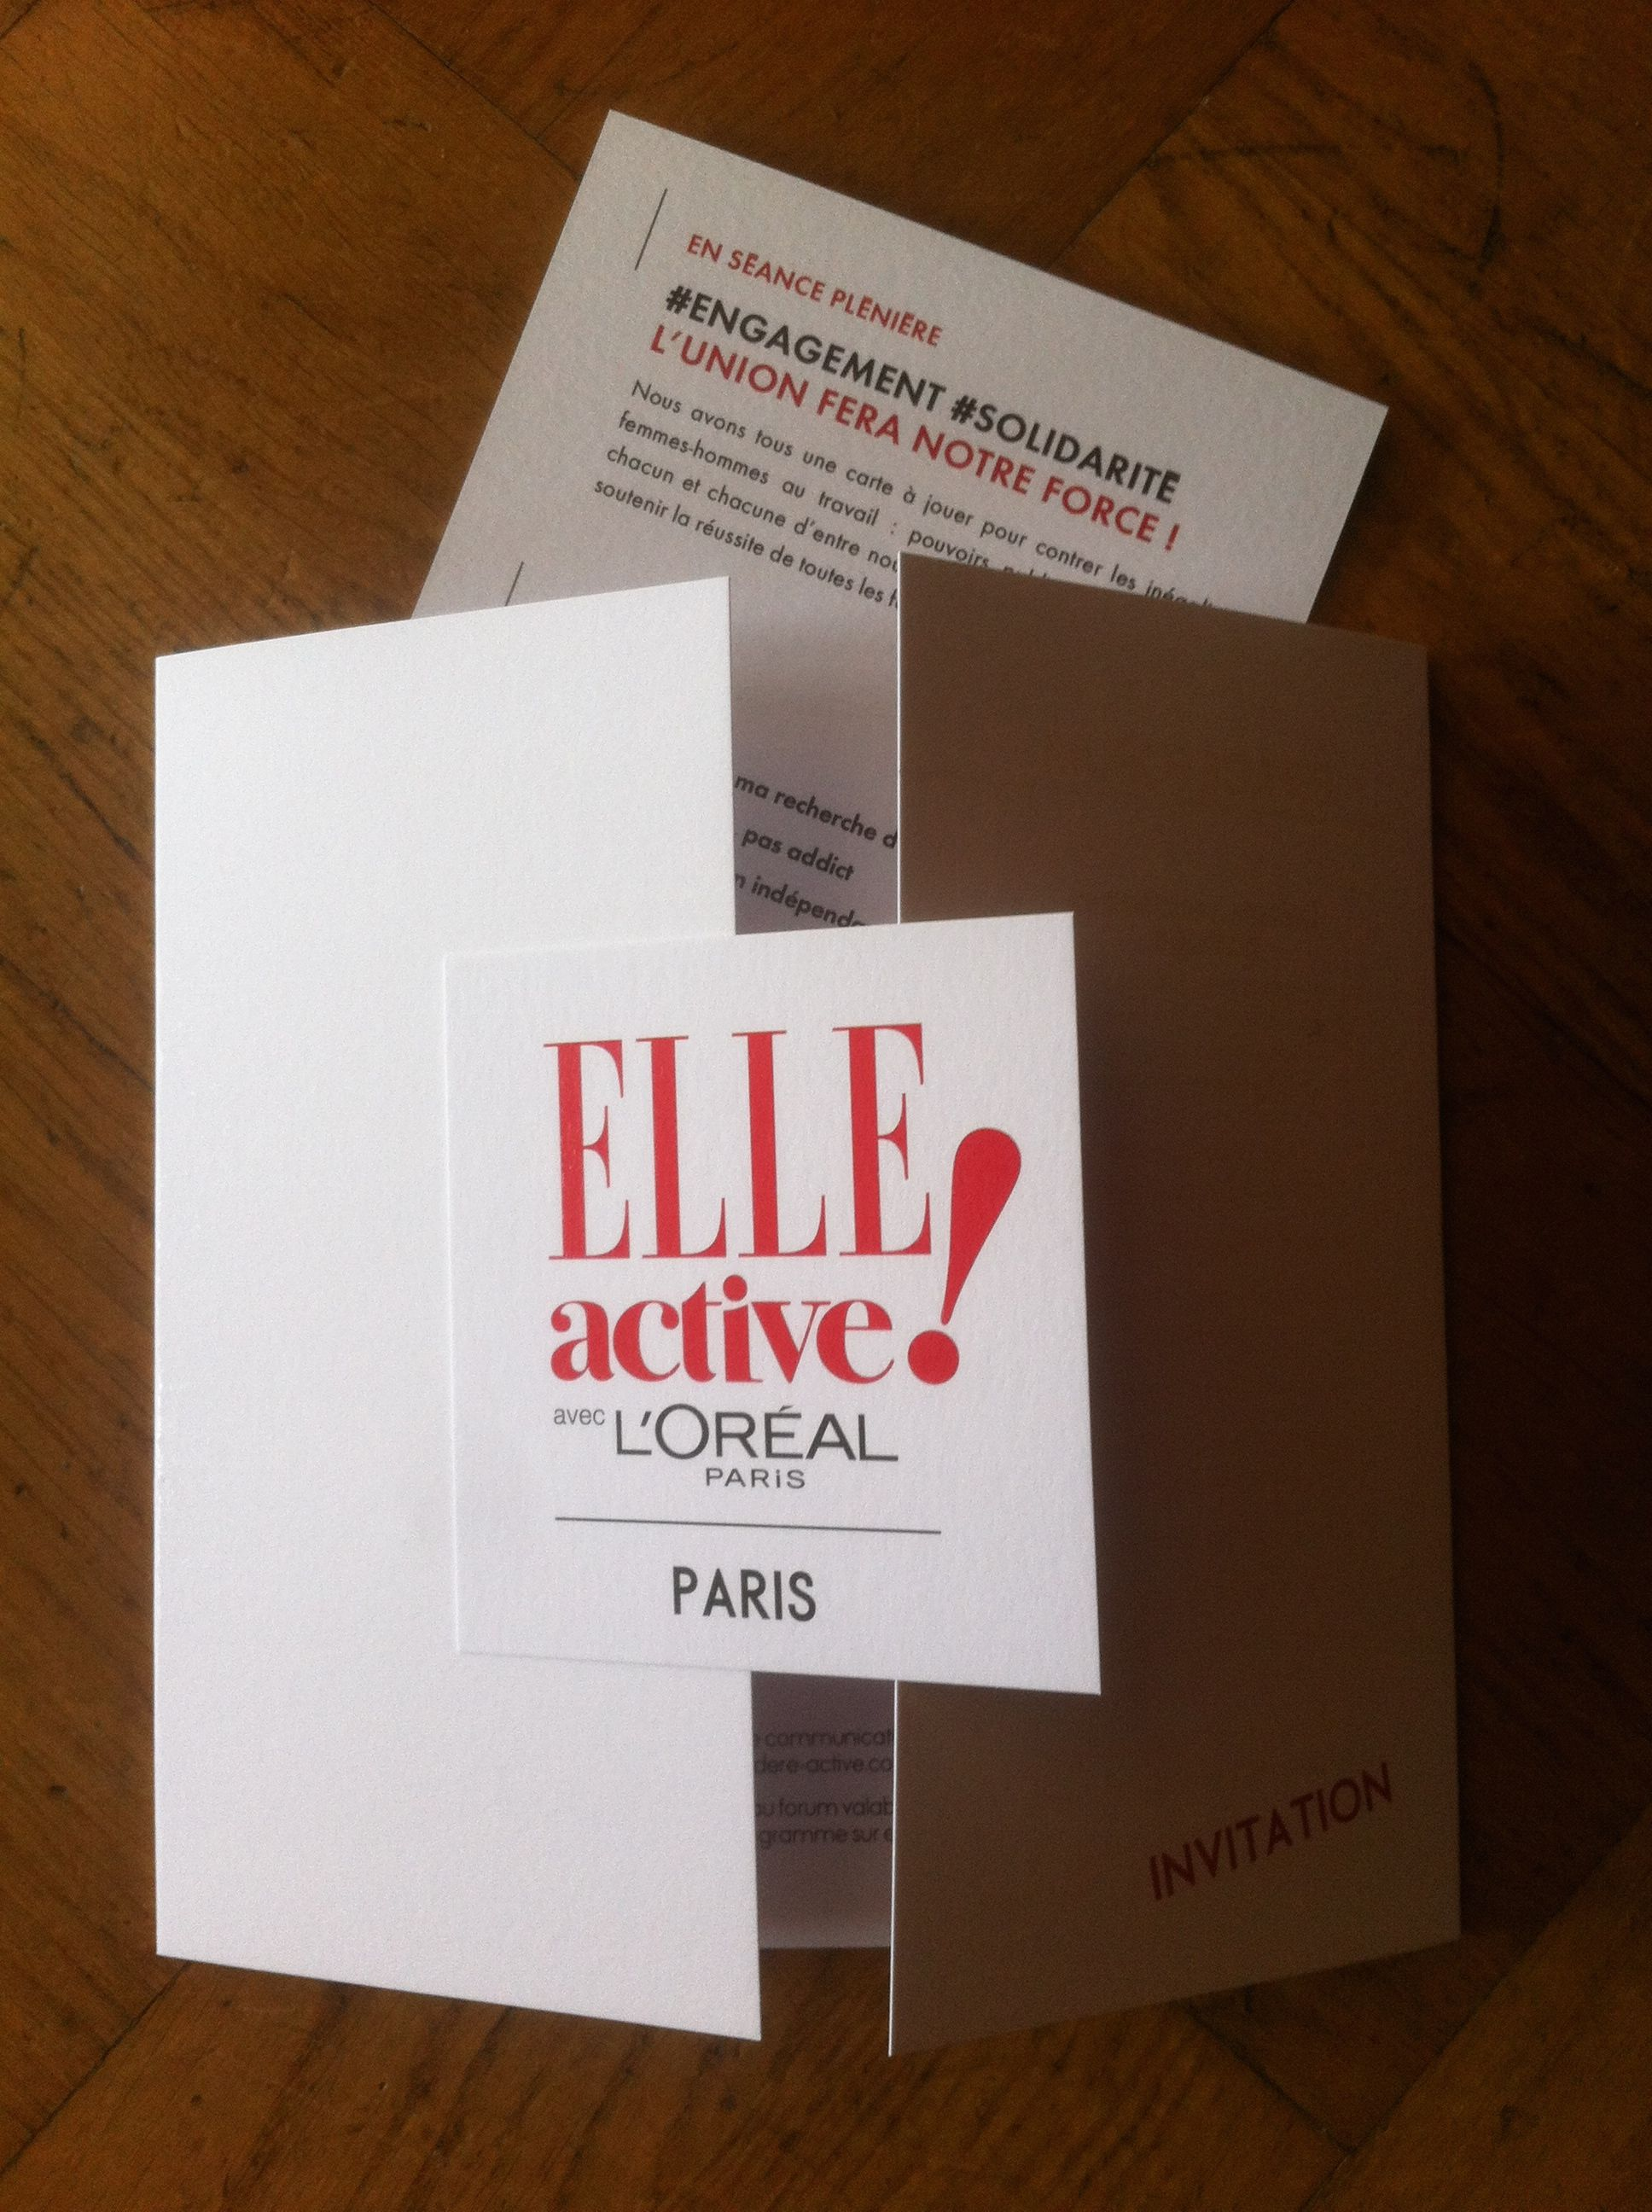 Forum ELLE active !